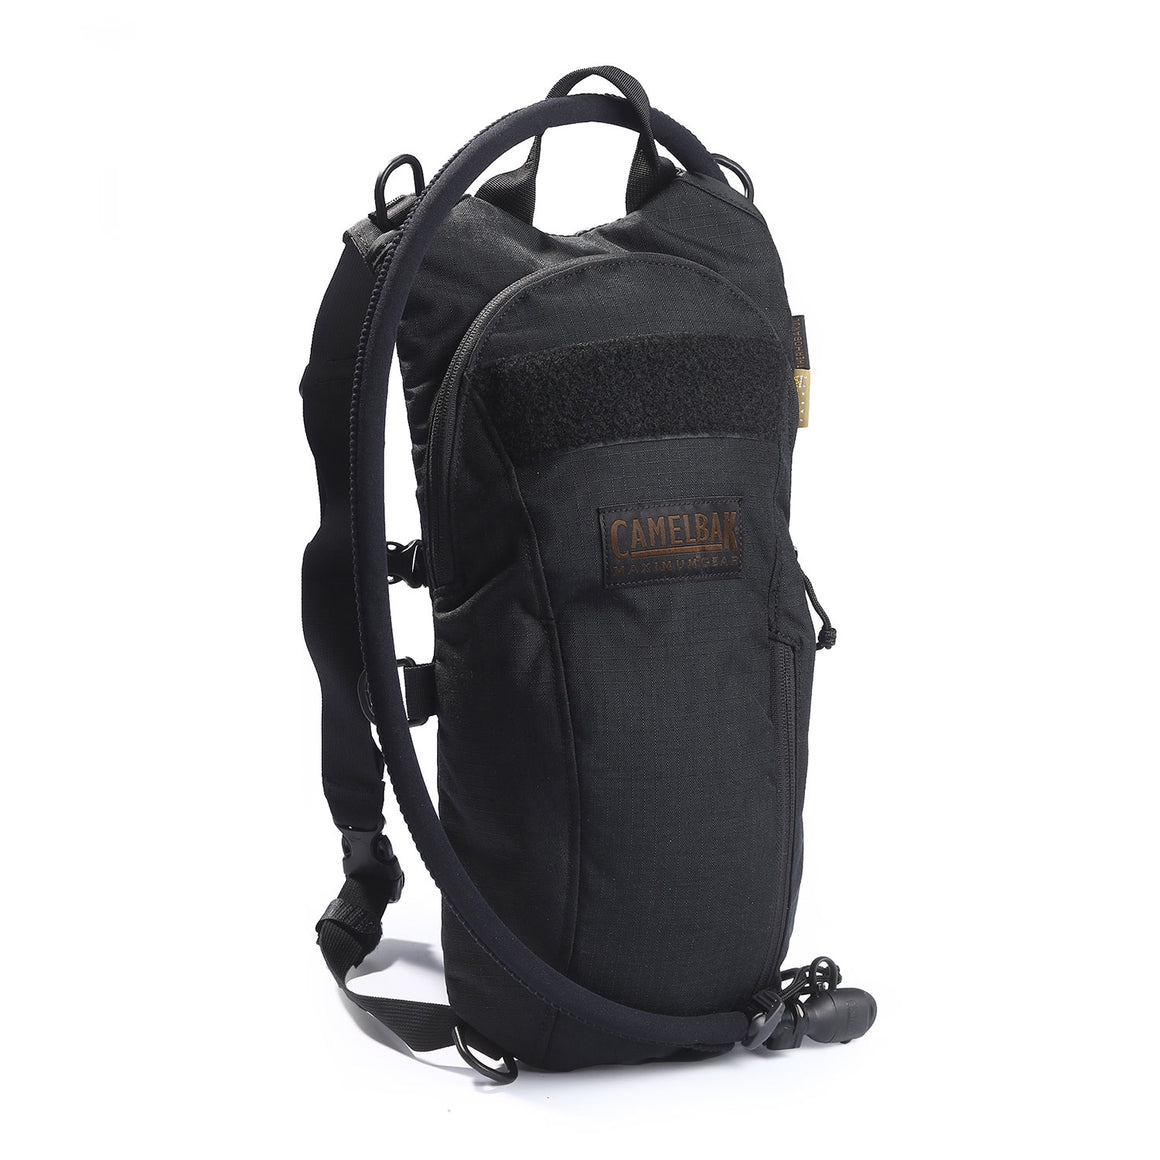 CAMELBAK Thermobak™ 3L Mil Spec Antidote® Long,CAMELBAK Thermobak™ 3L Mil Spec Antidote® Long